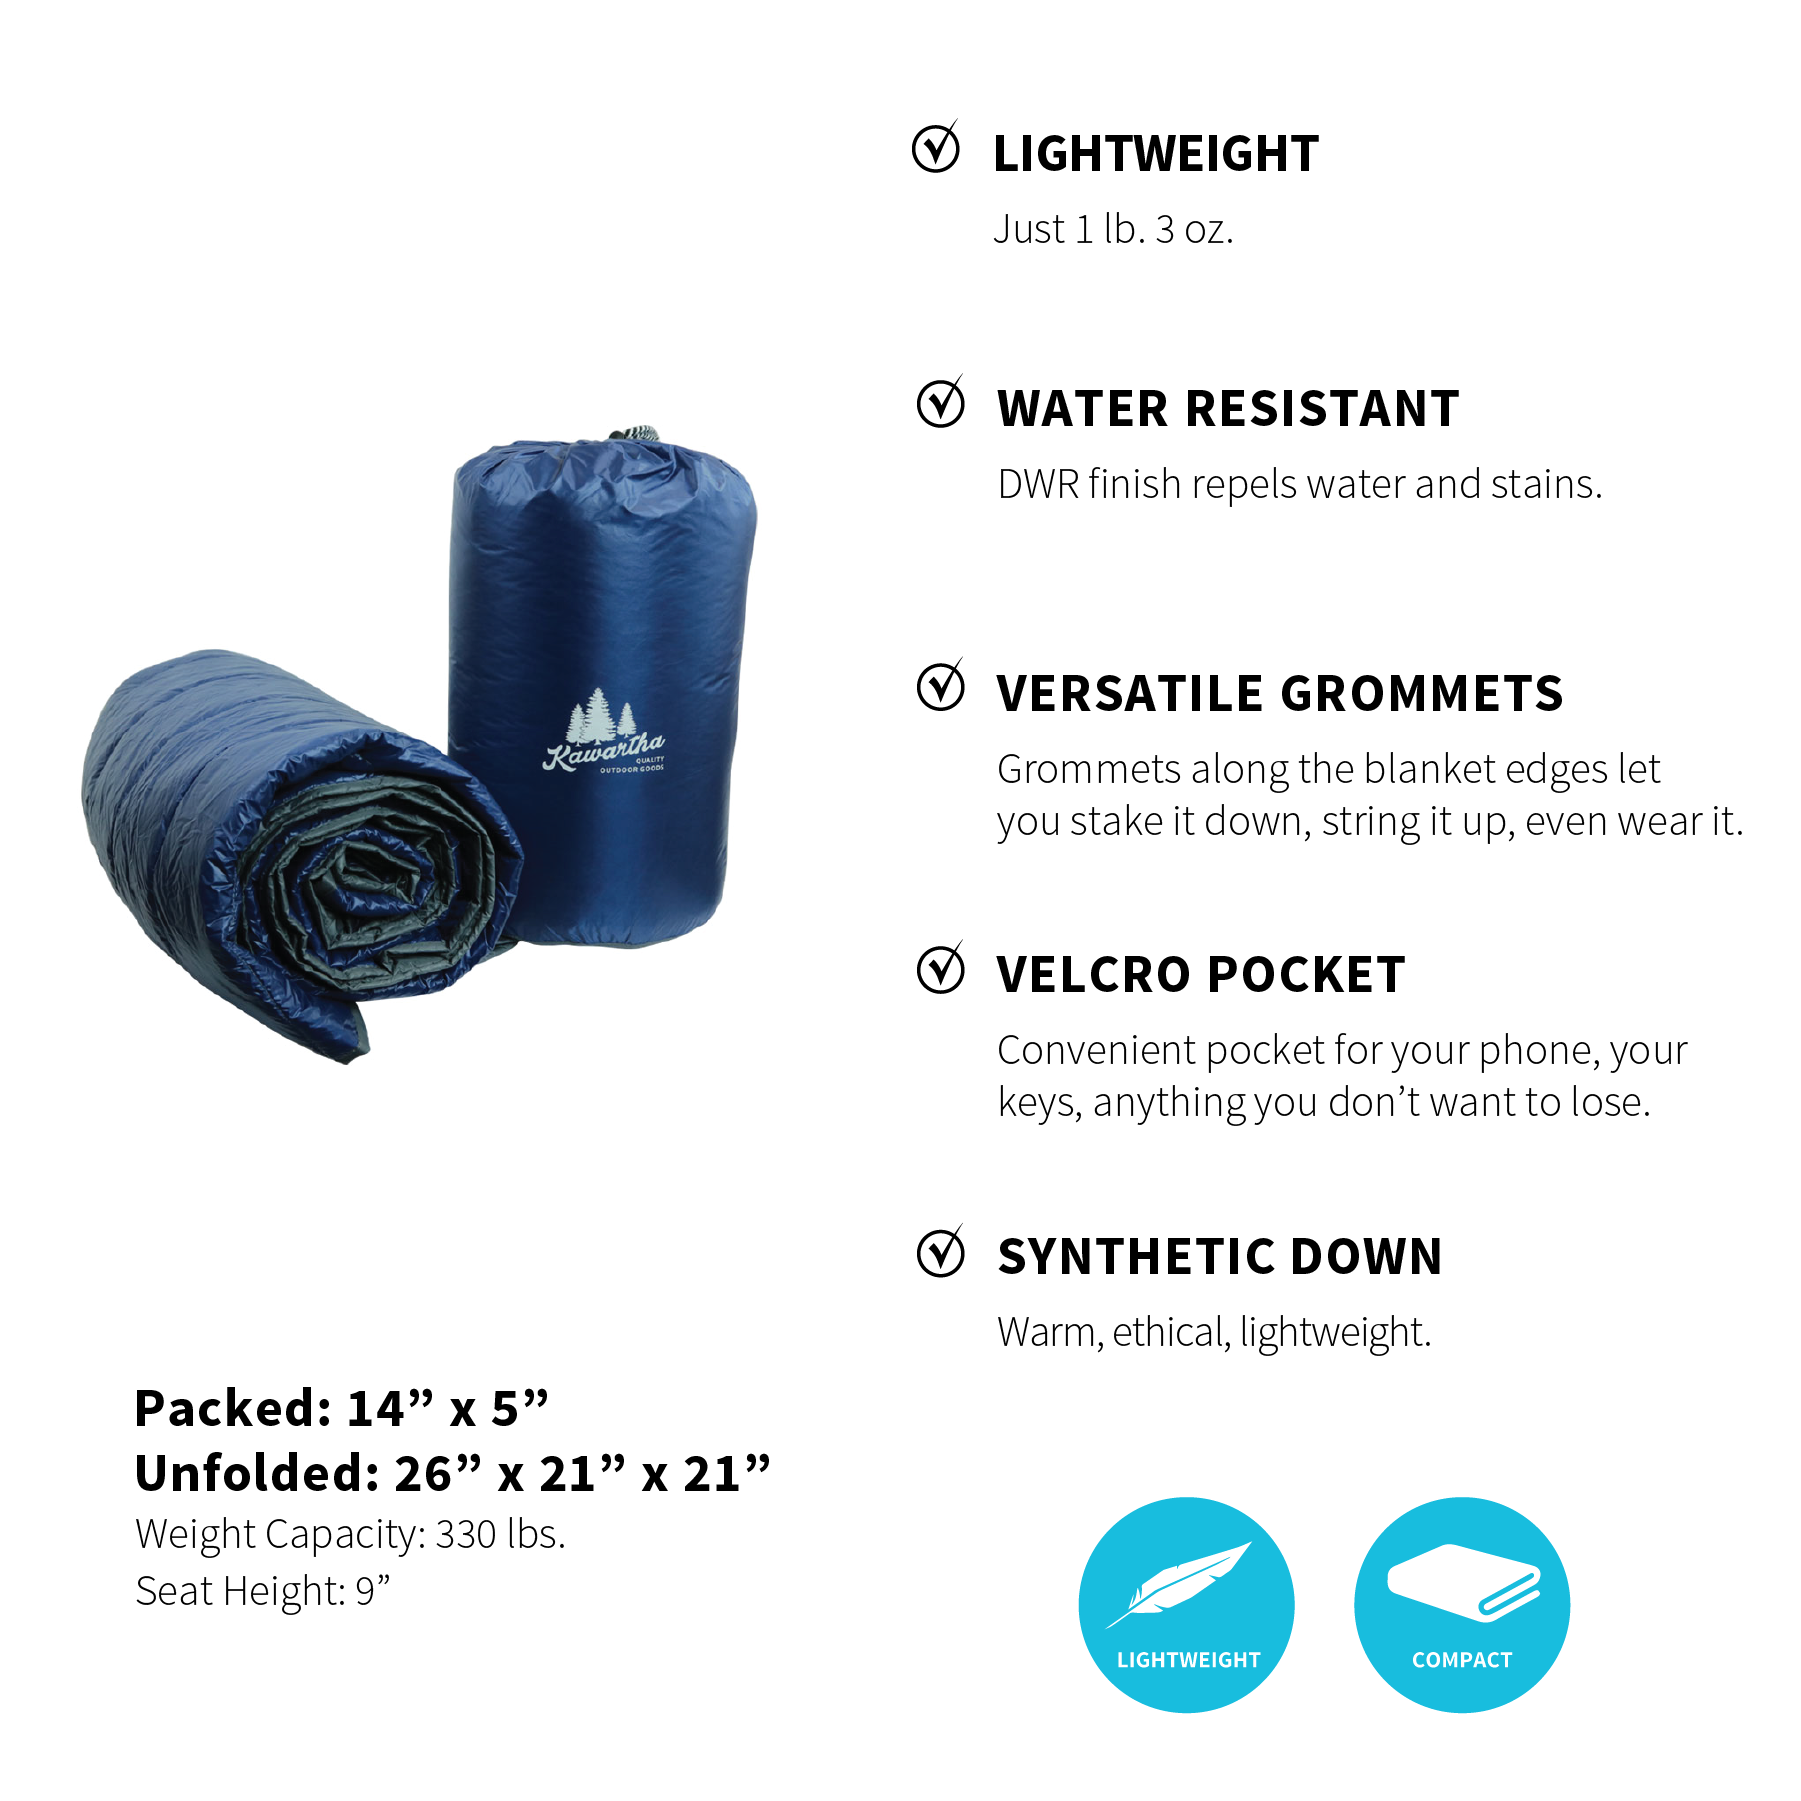 Buy 1 Base Camp Blanket - Get 2 Dry Bag Coolers FREE